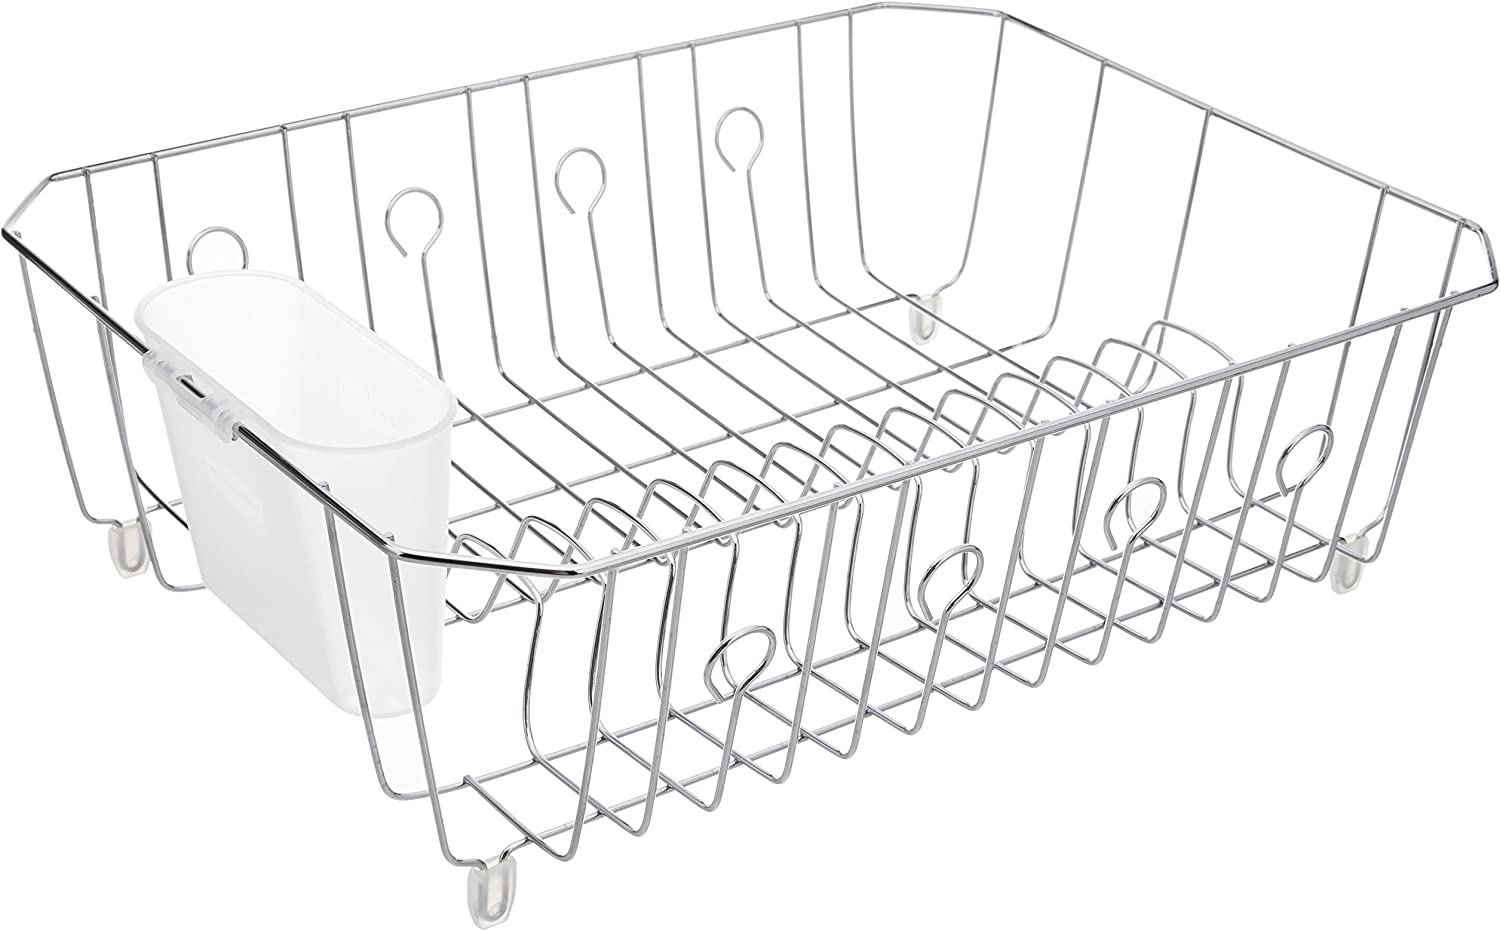 Rubbermaid AntiMicrobial In-Sink Dish Drainer With Silverware Cup, Chrome, Large